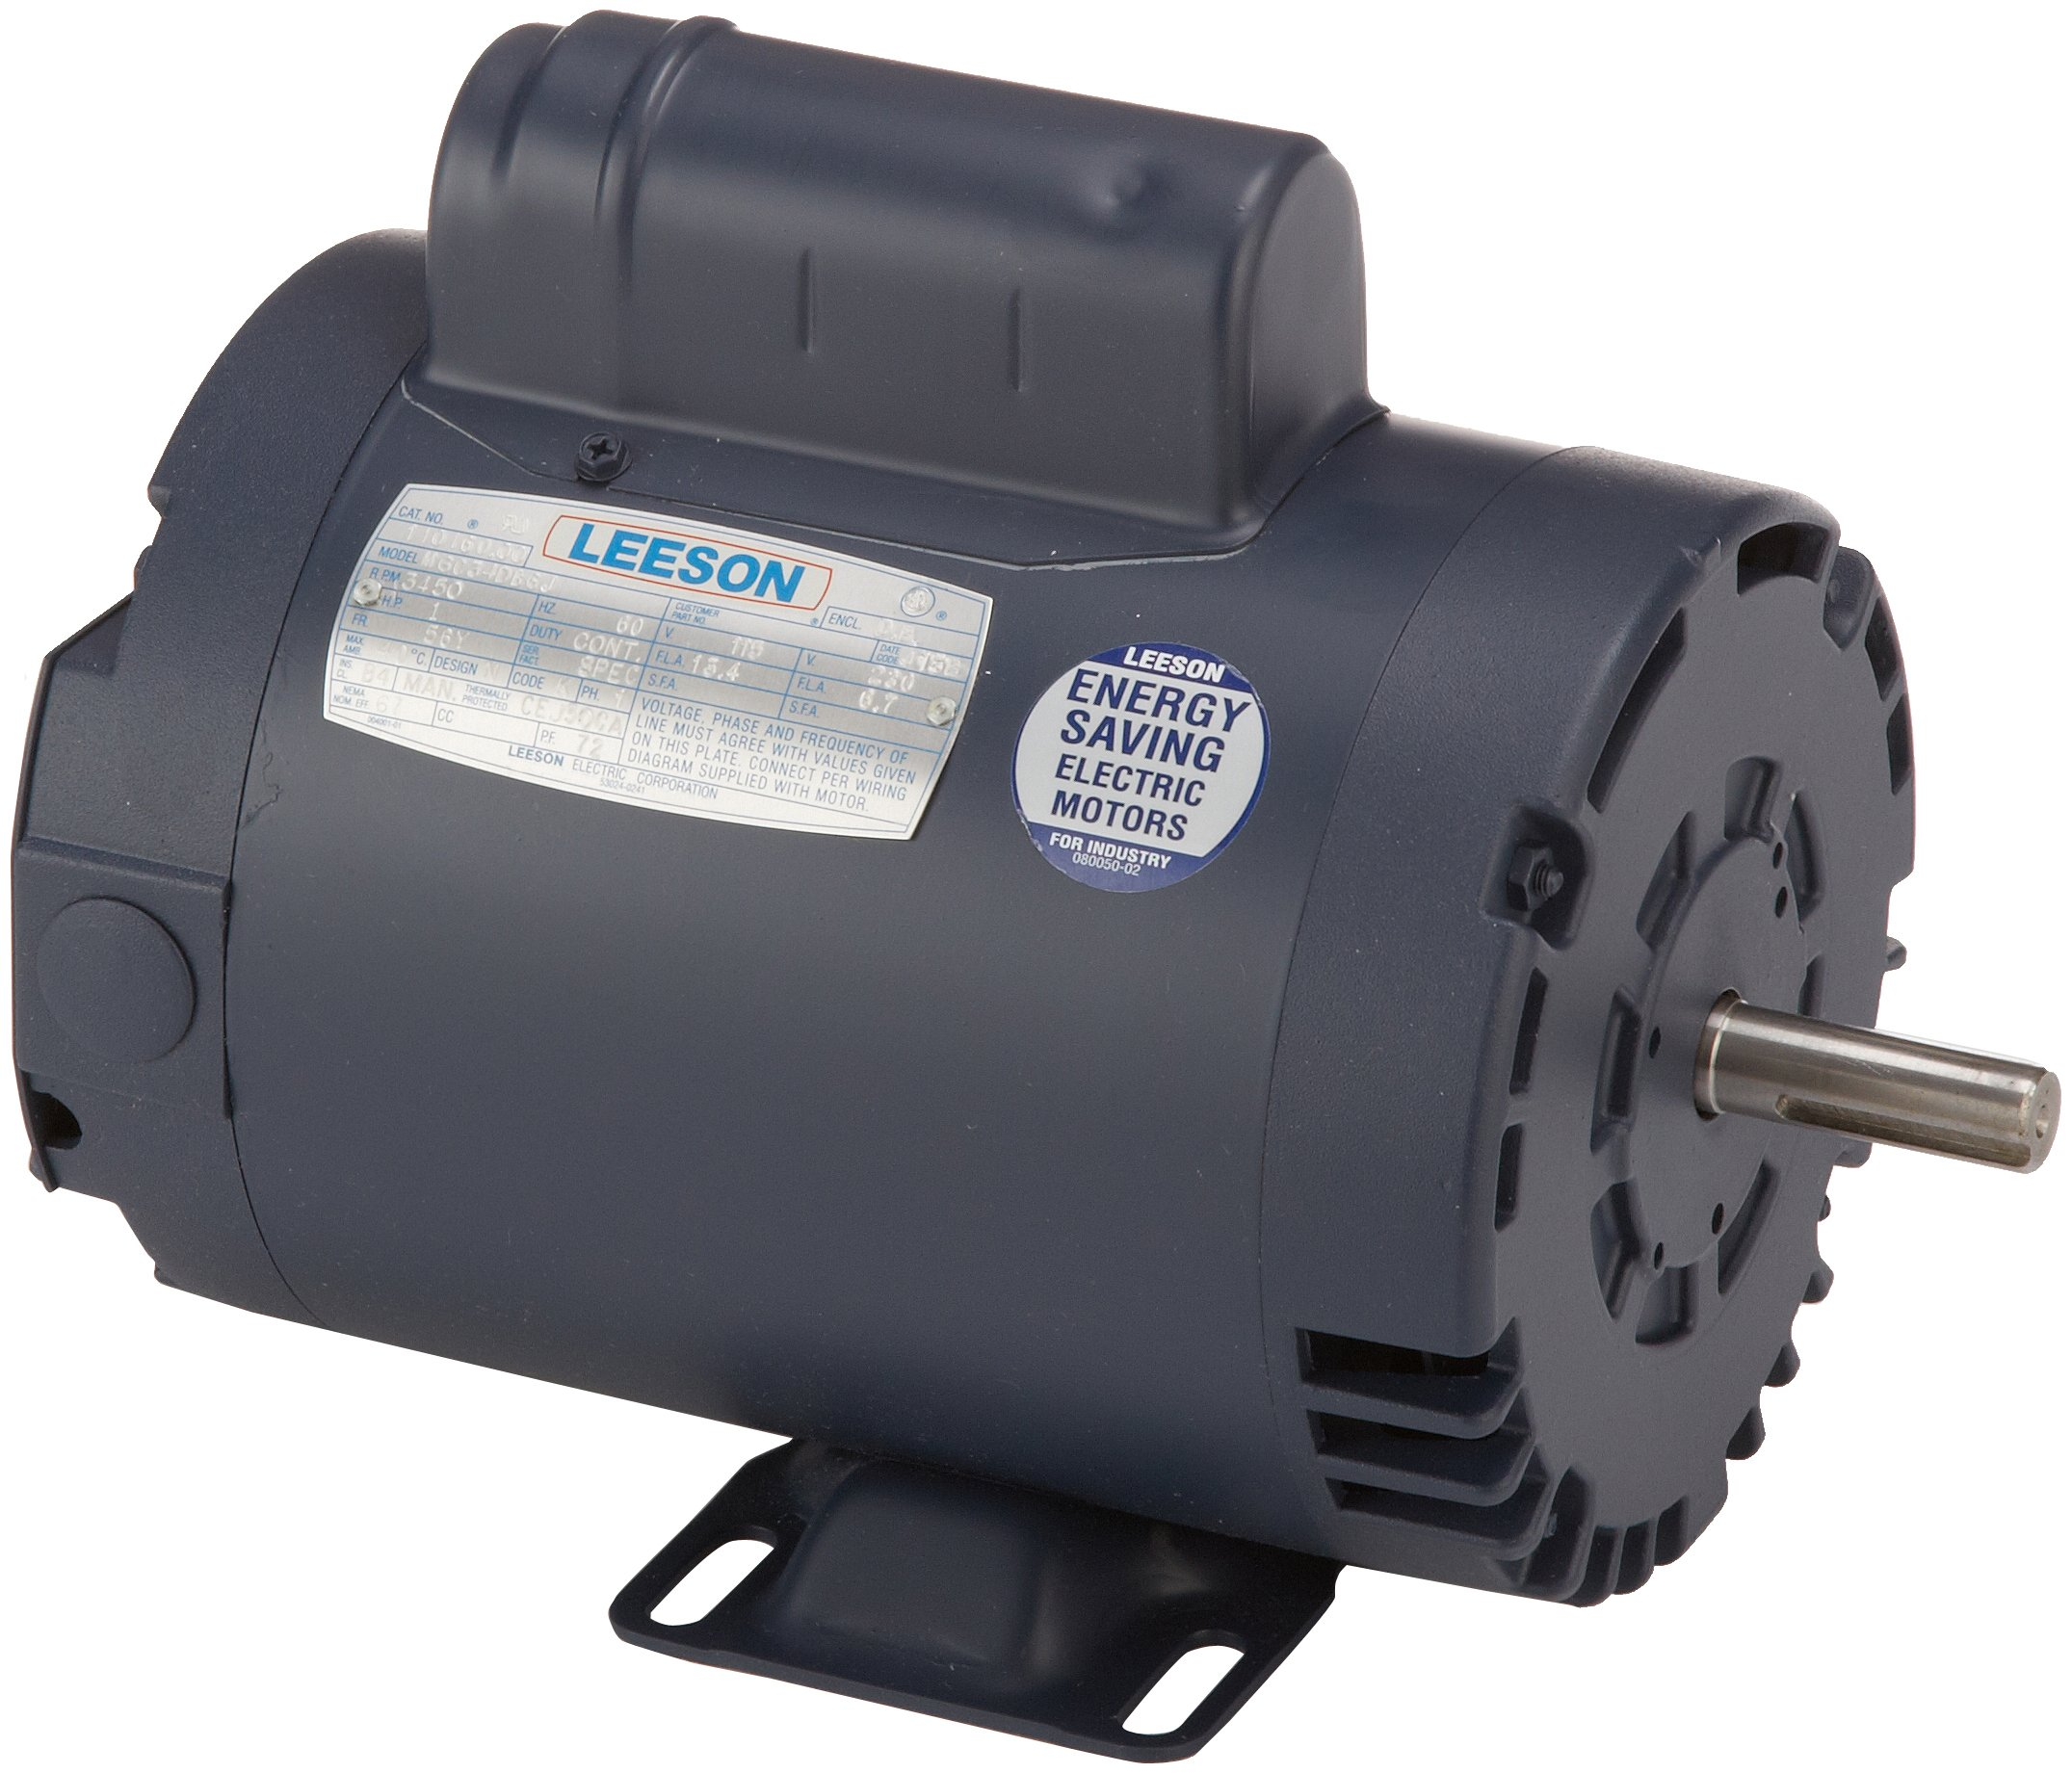 Leeson 110160.00 Compressor Duty ODP Motor, 1 Phase, 56Y Frame, Rigid Mounting, 1HP, 3600 RPM, 115/230V Voltage, 60Hz Fequency